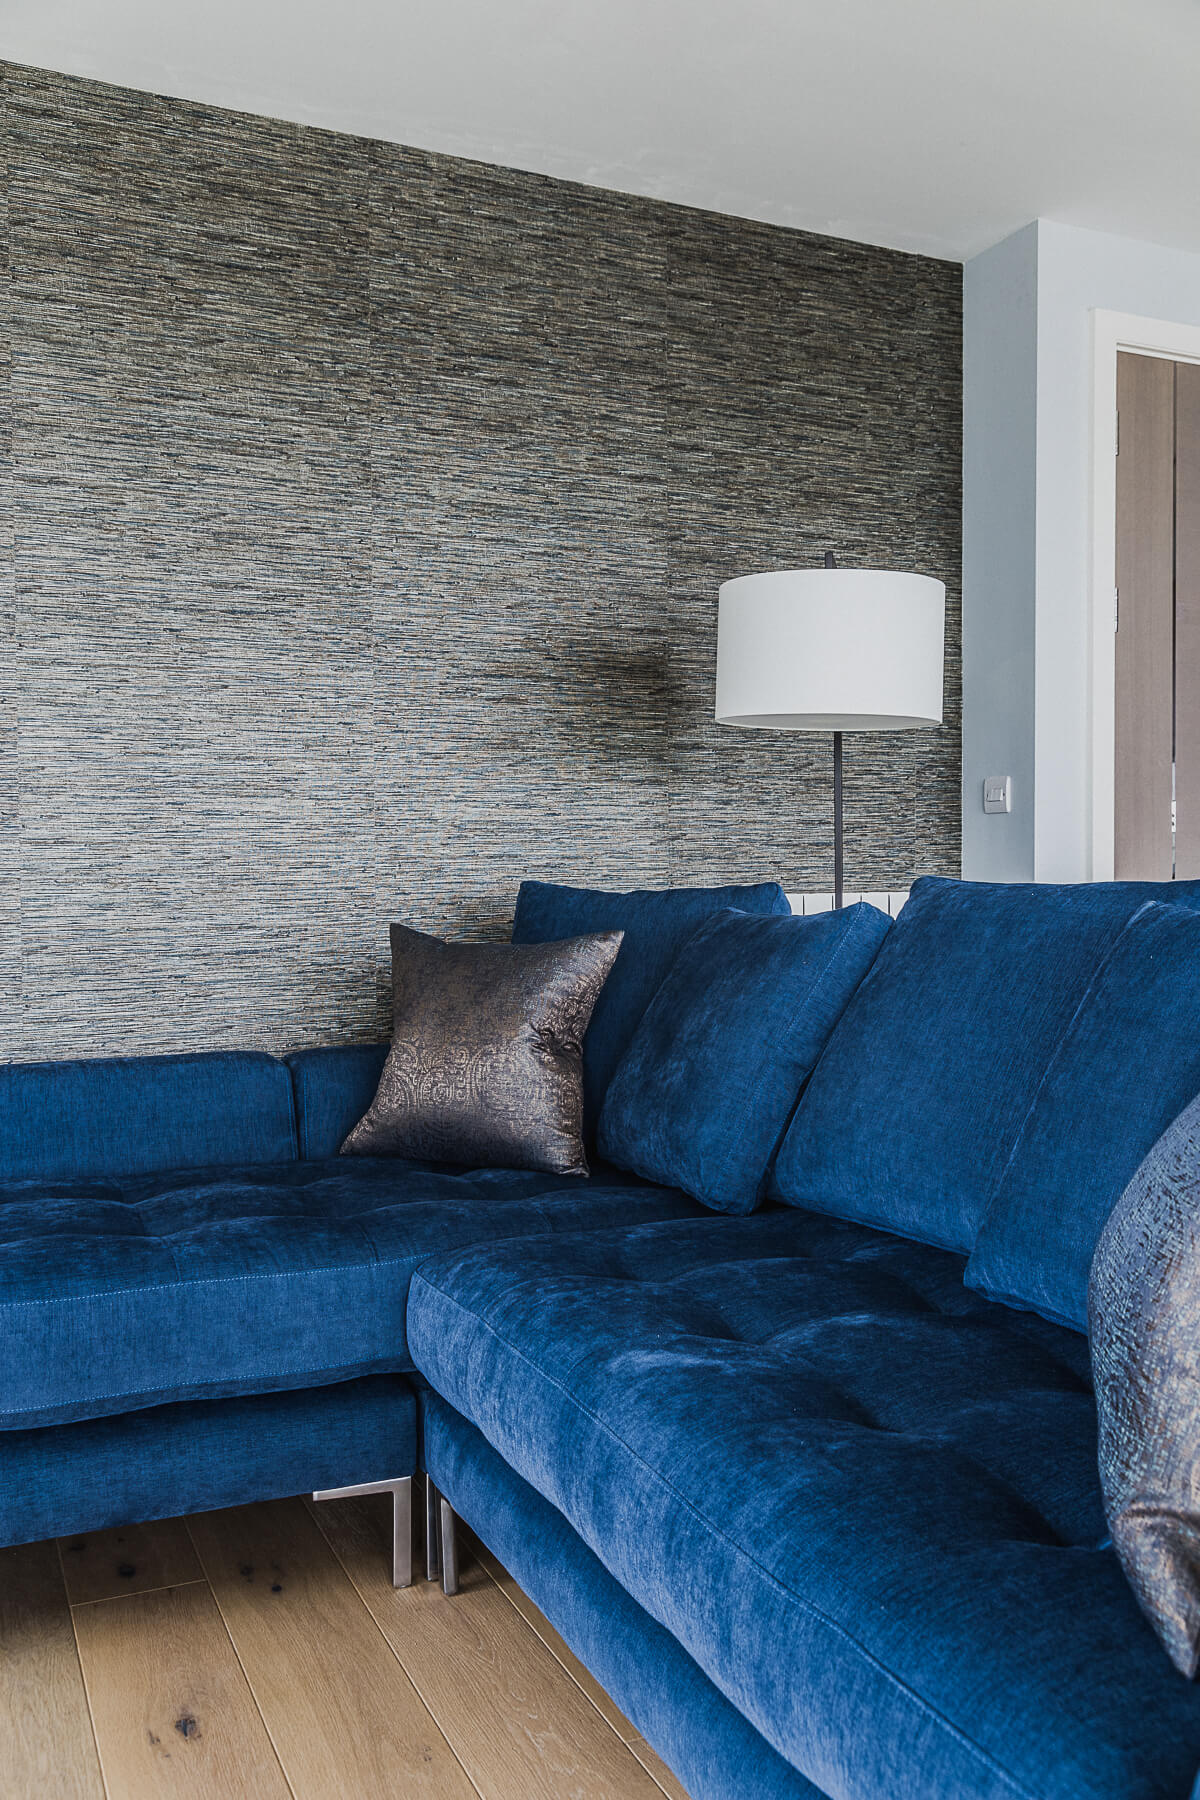 Royal Arsenal Woolwich Living area with textured wallcovering and blue sectional sofa